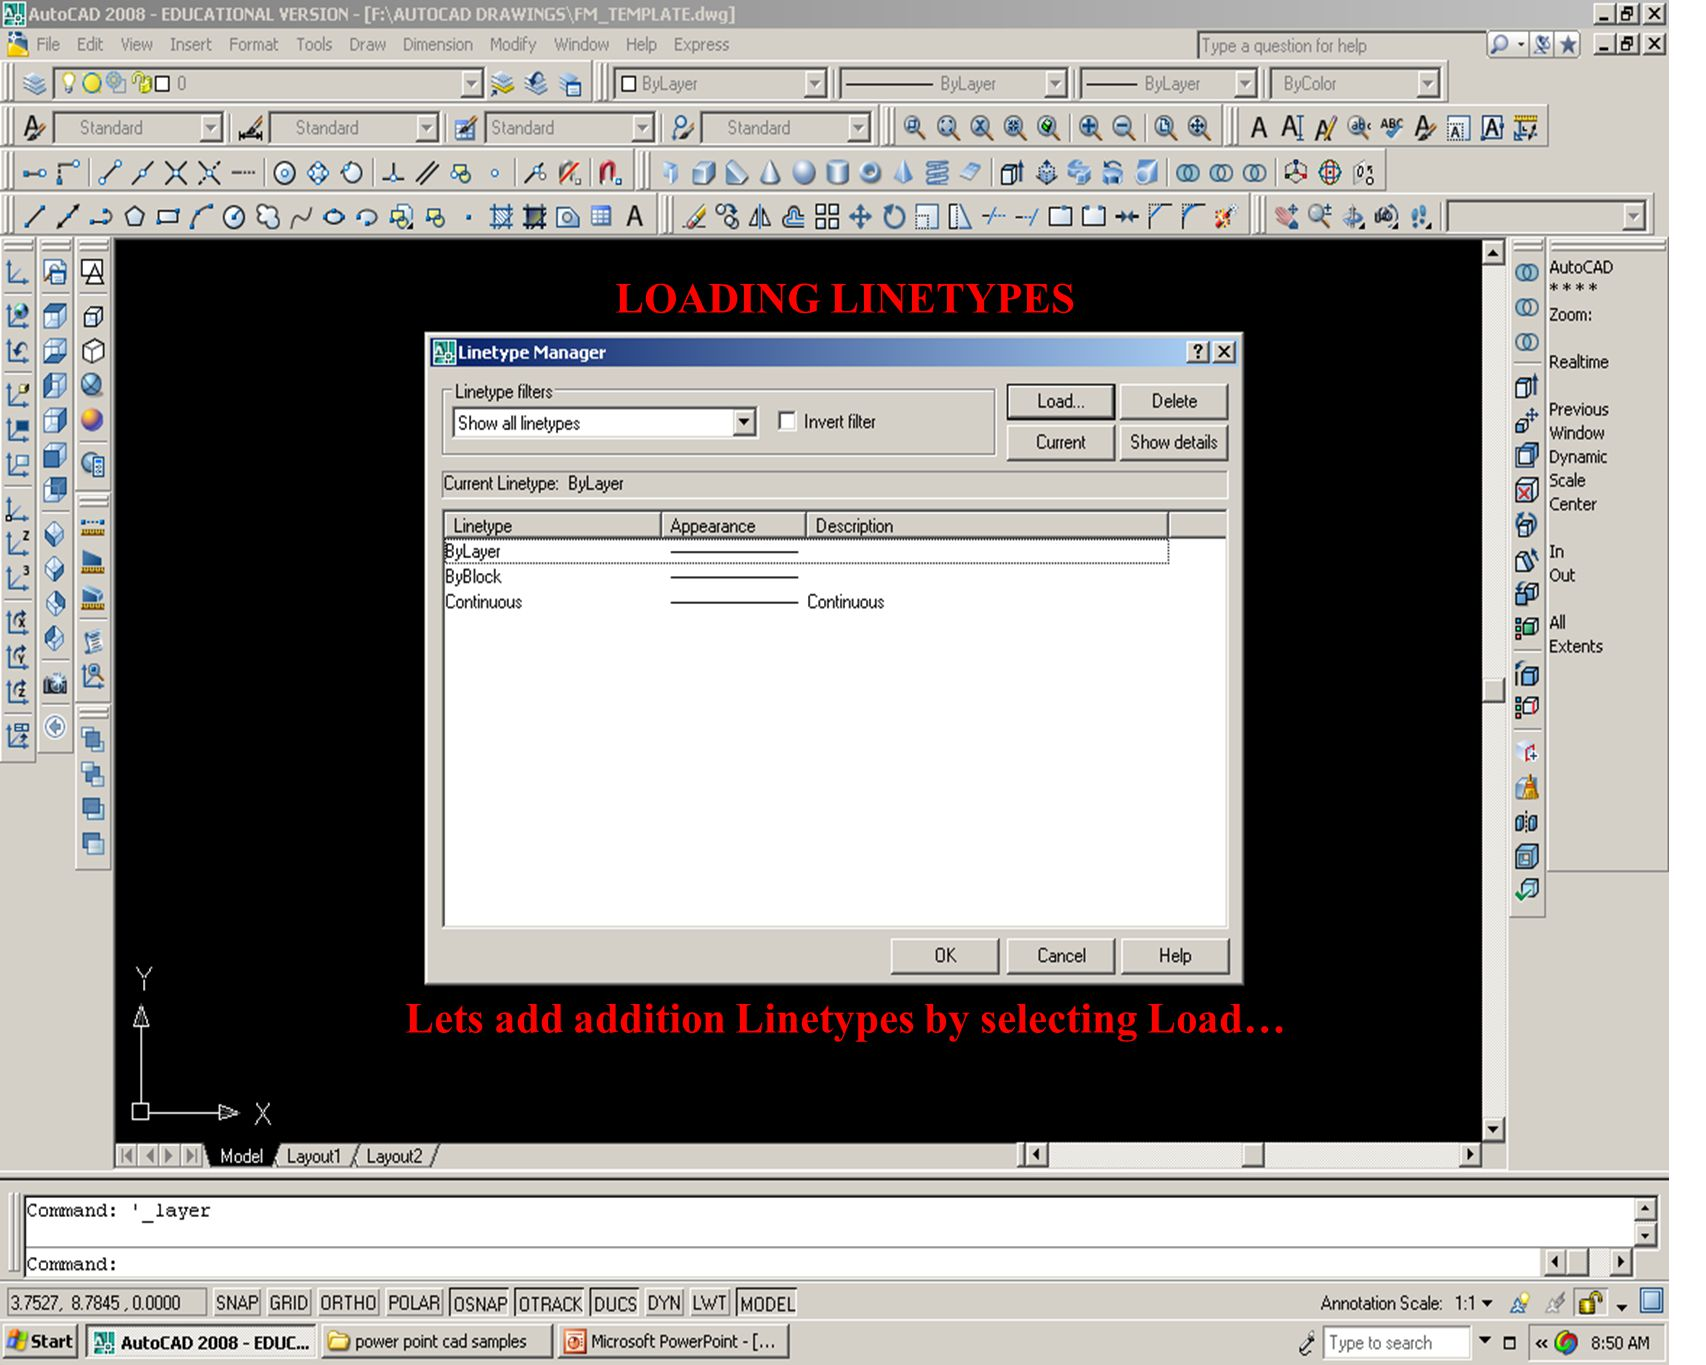 Lets add addition Linetypes by selecting Load…